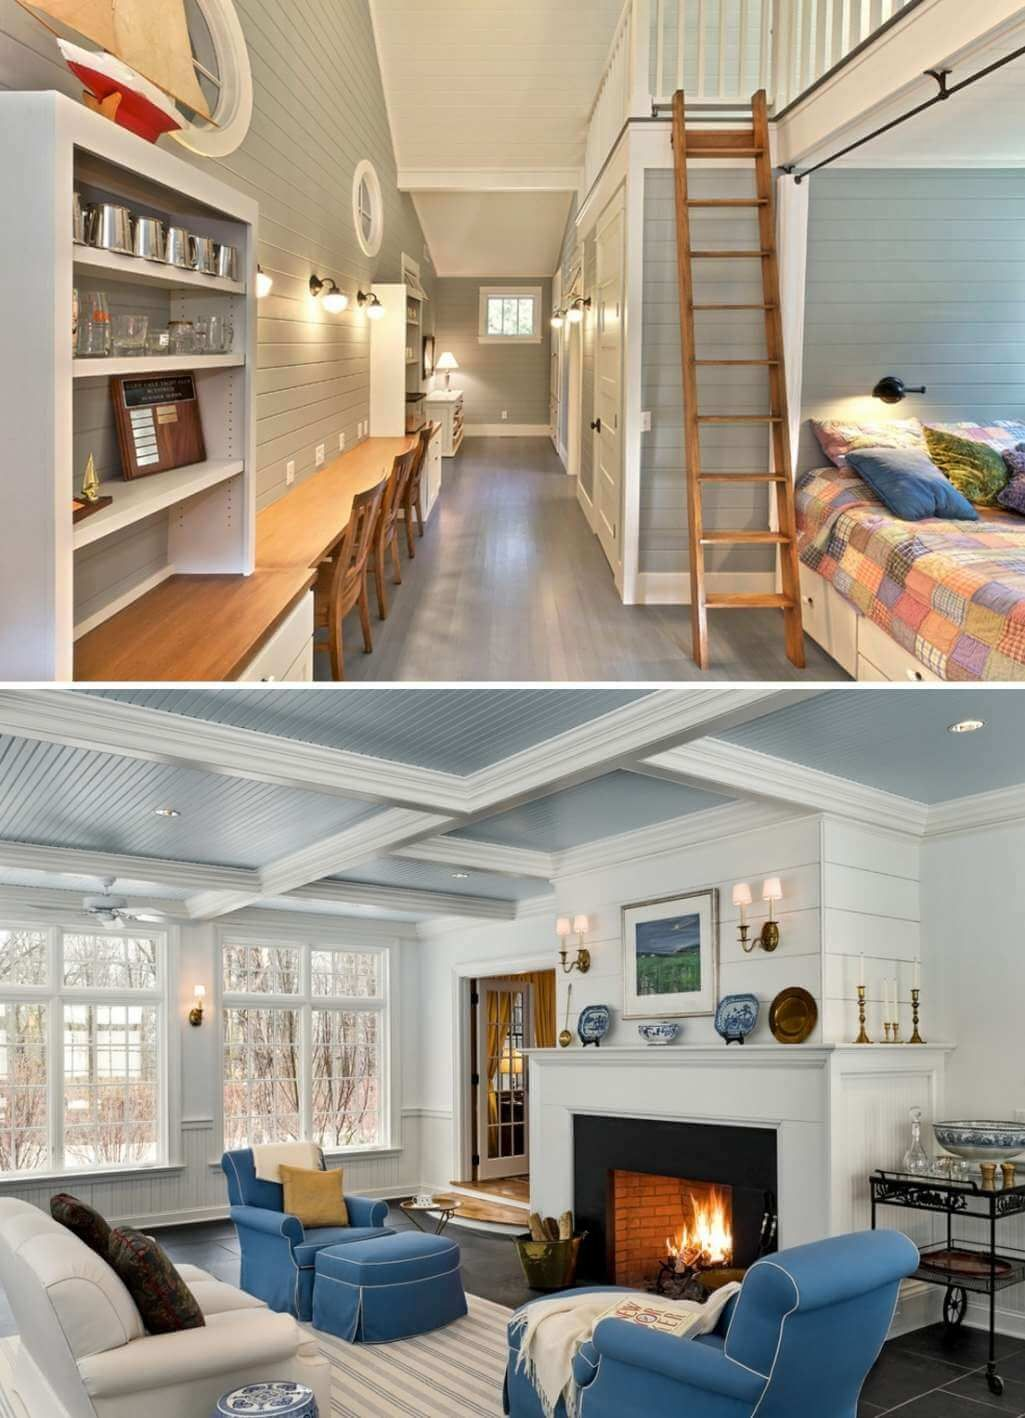 High Quality 10 Ways To Decorate Your Home With Shiplap   Https://interior Designing